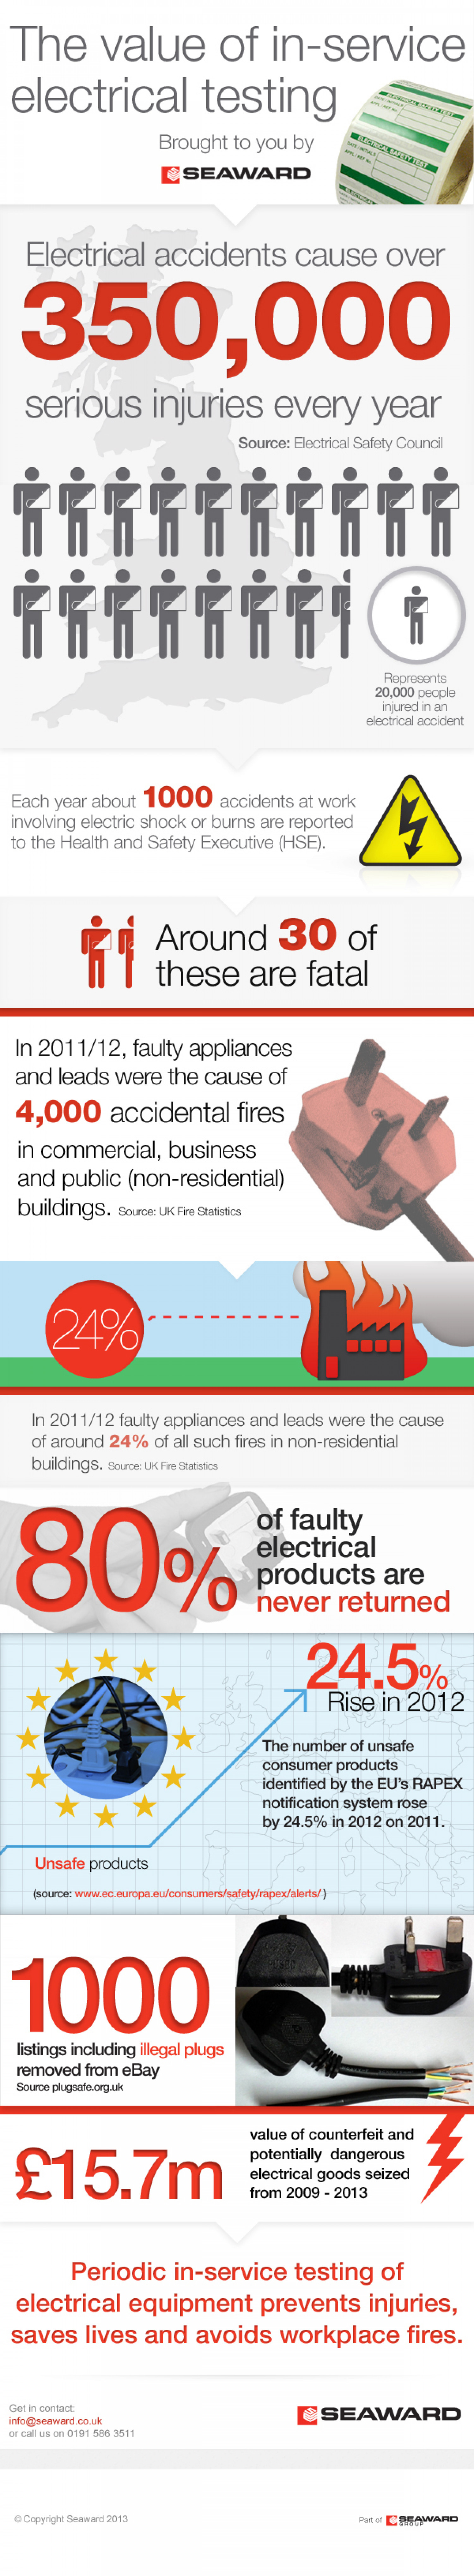 The Value of In-Service Electrical Testing Infographic